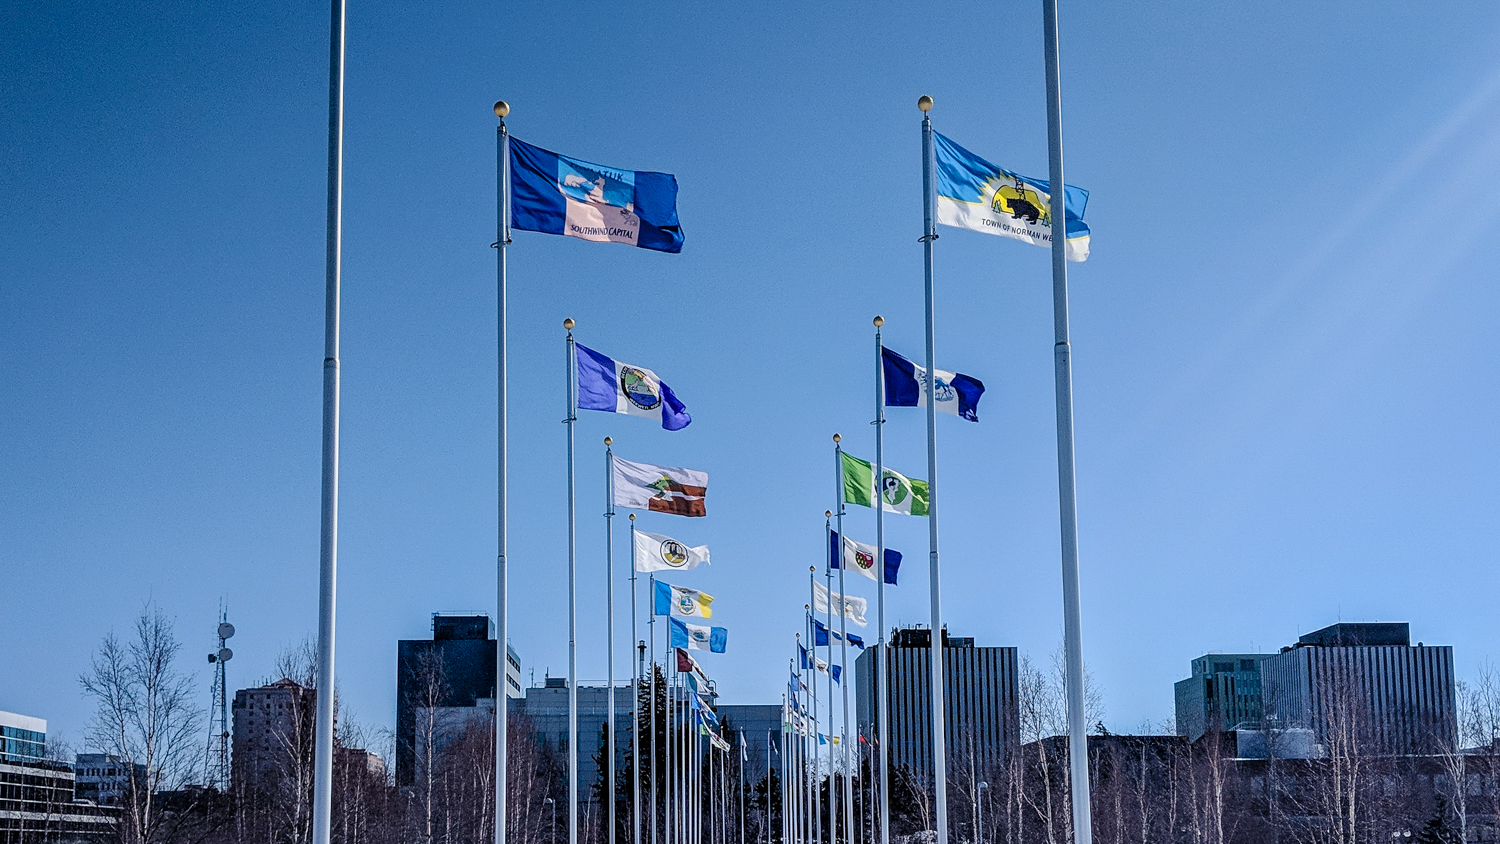 A file photo shows the flags of various NWT communities flying in Yellowknife